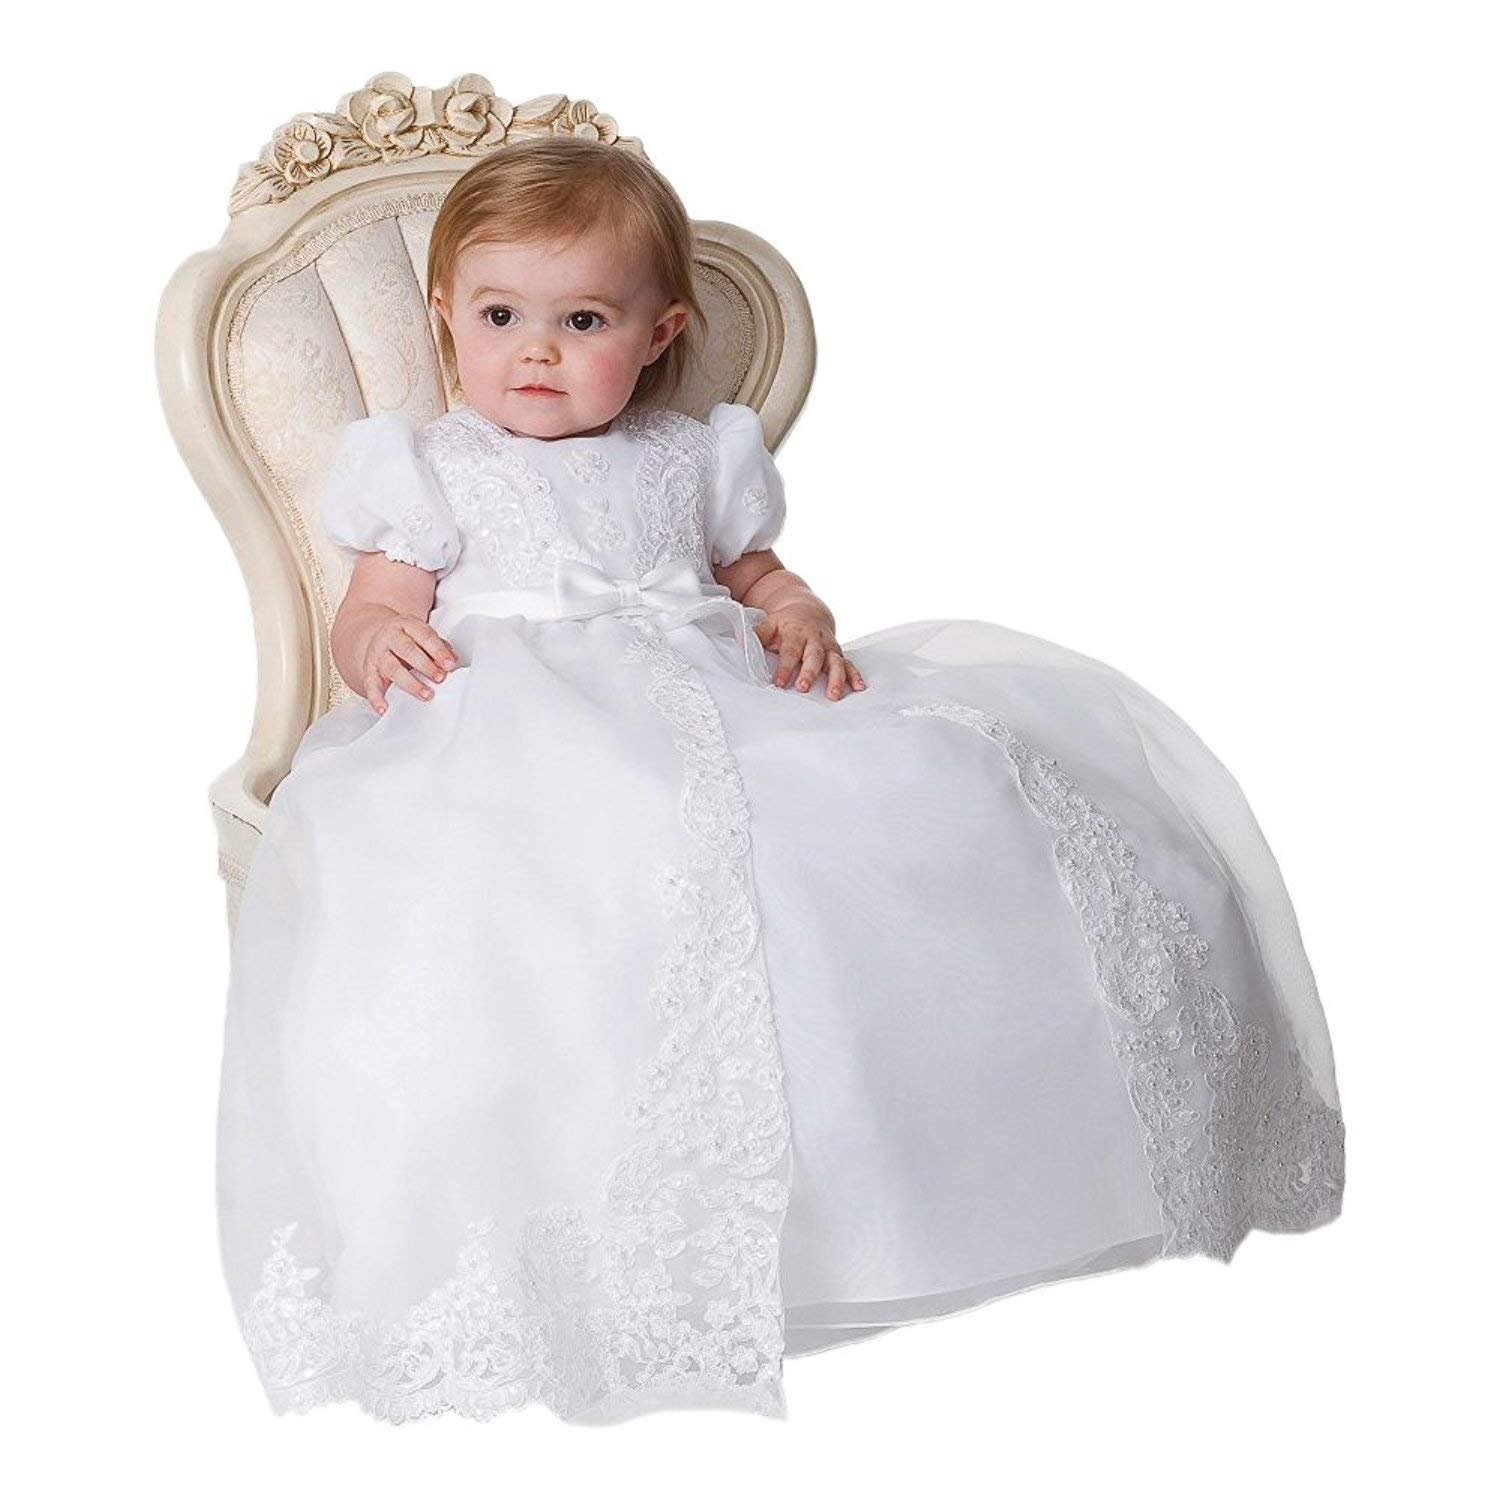 Portsvy Lovely White Lace Girls Long Christening Baptism Gowns Dresses with Bonnet